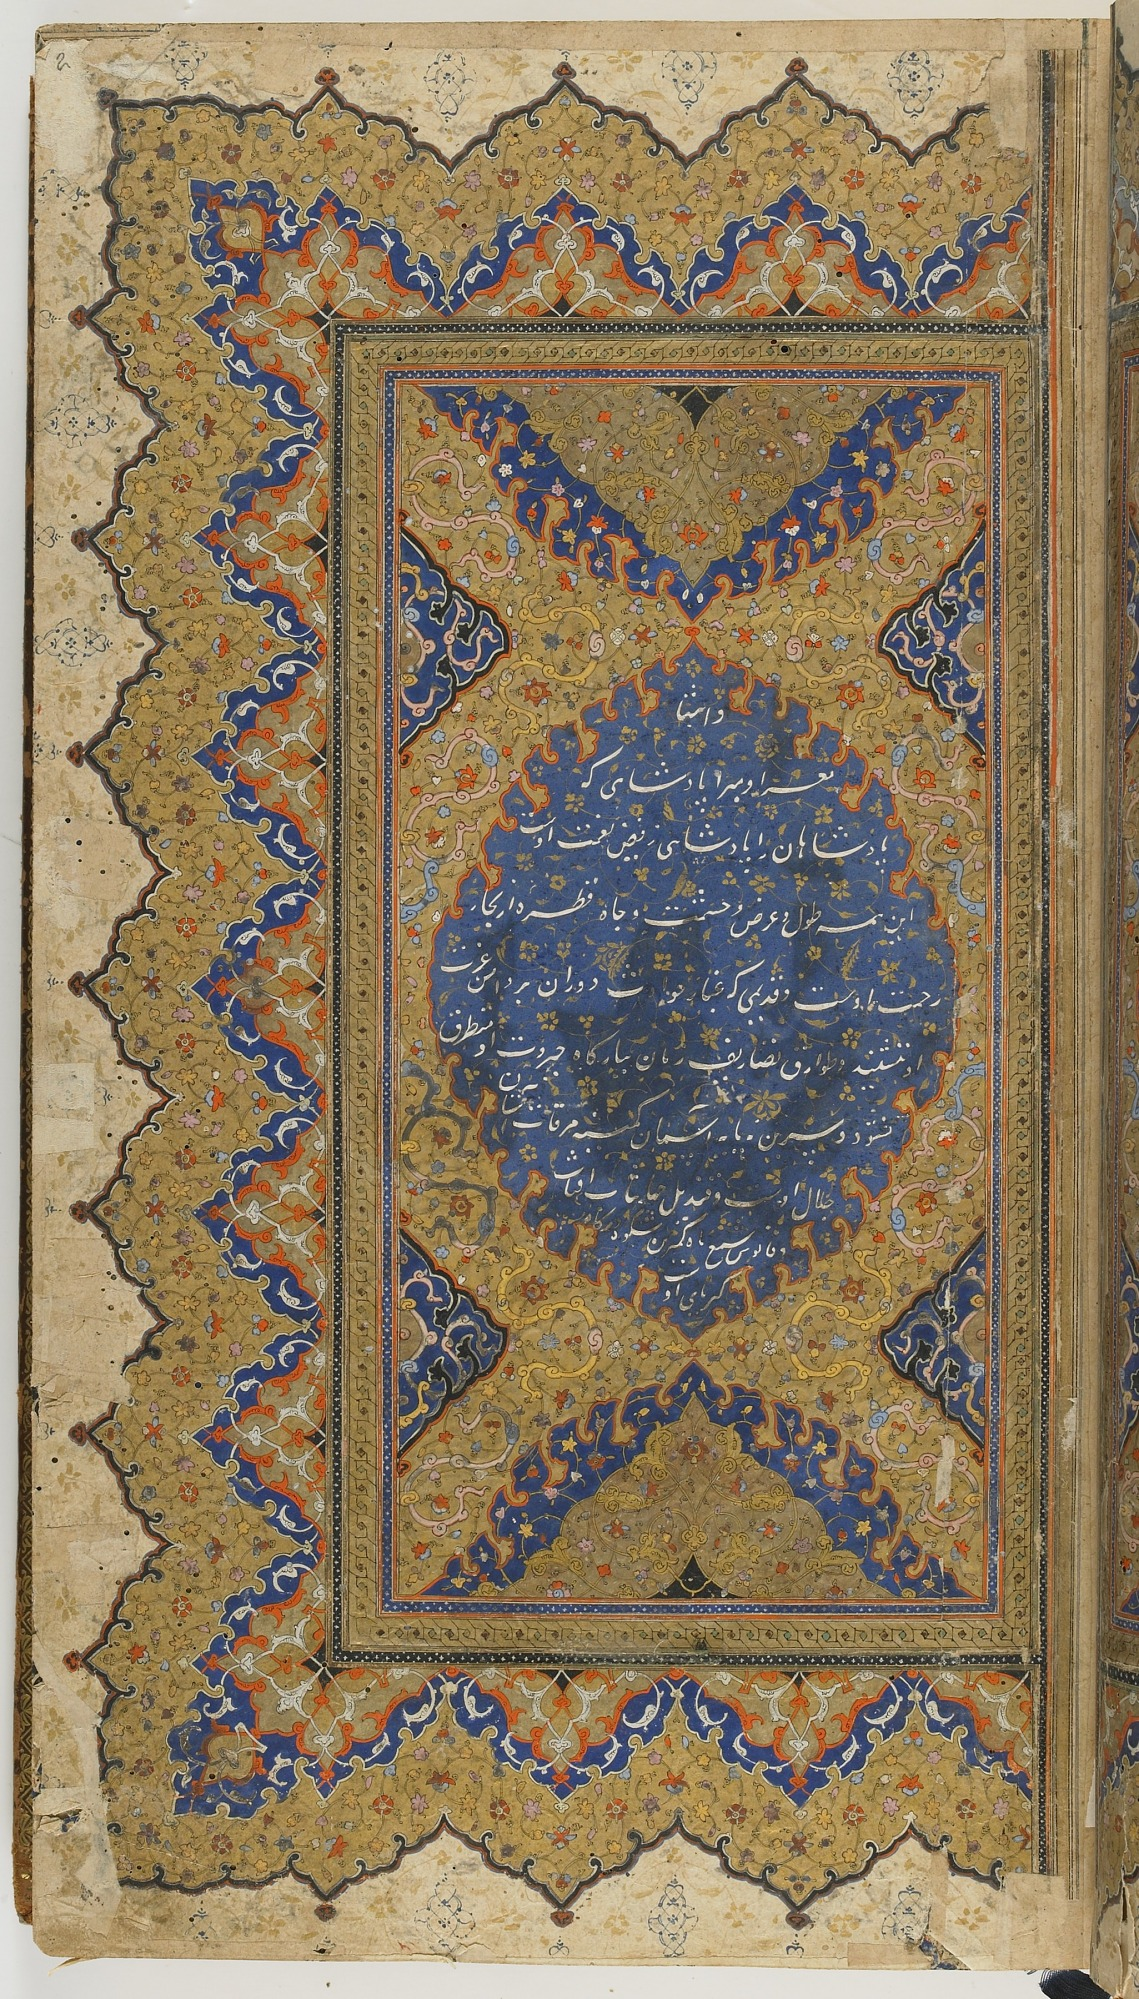 folio 2 recto: The Shahnama (Book of kings) by Firdausi (d. 1020)